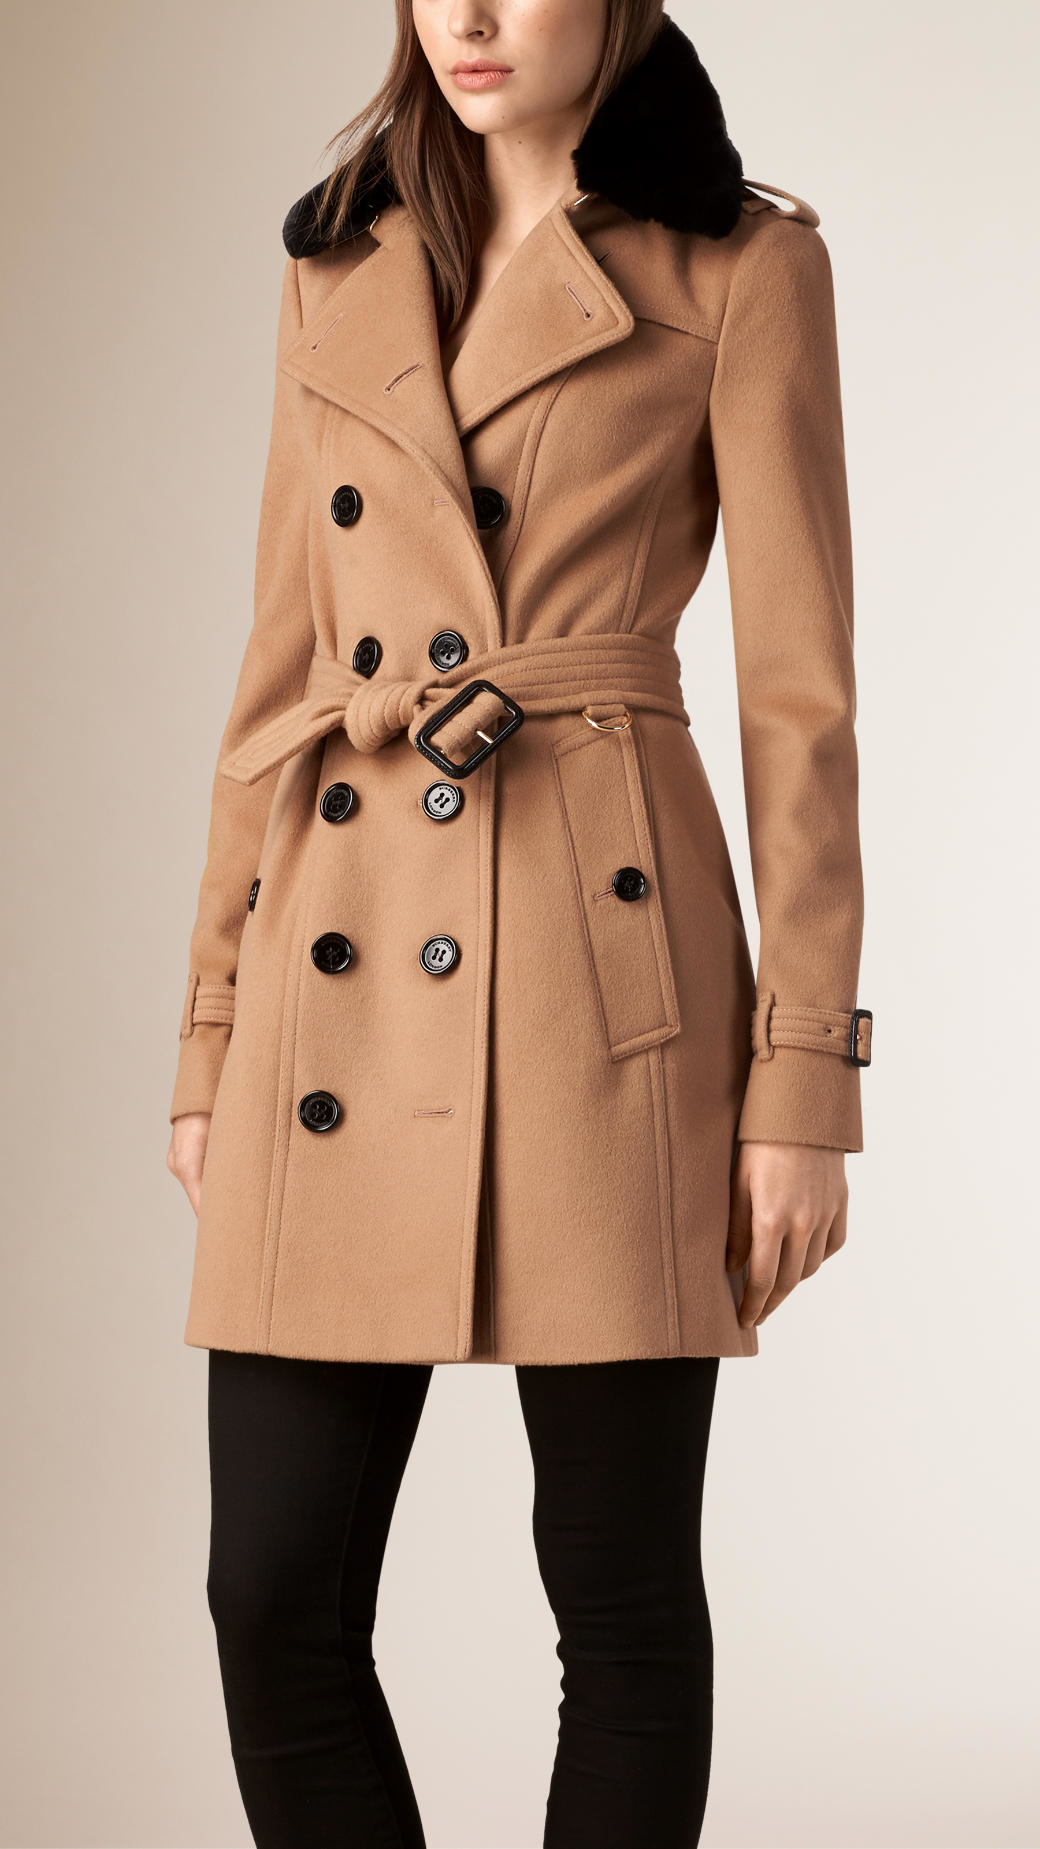 Burberry Fur Collar Wool Cashmere Trench Coat in Natural | Lyst